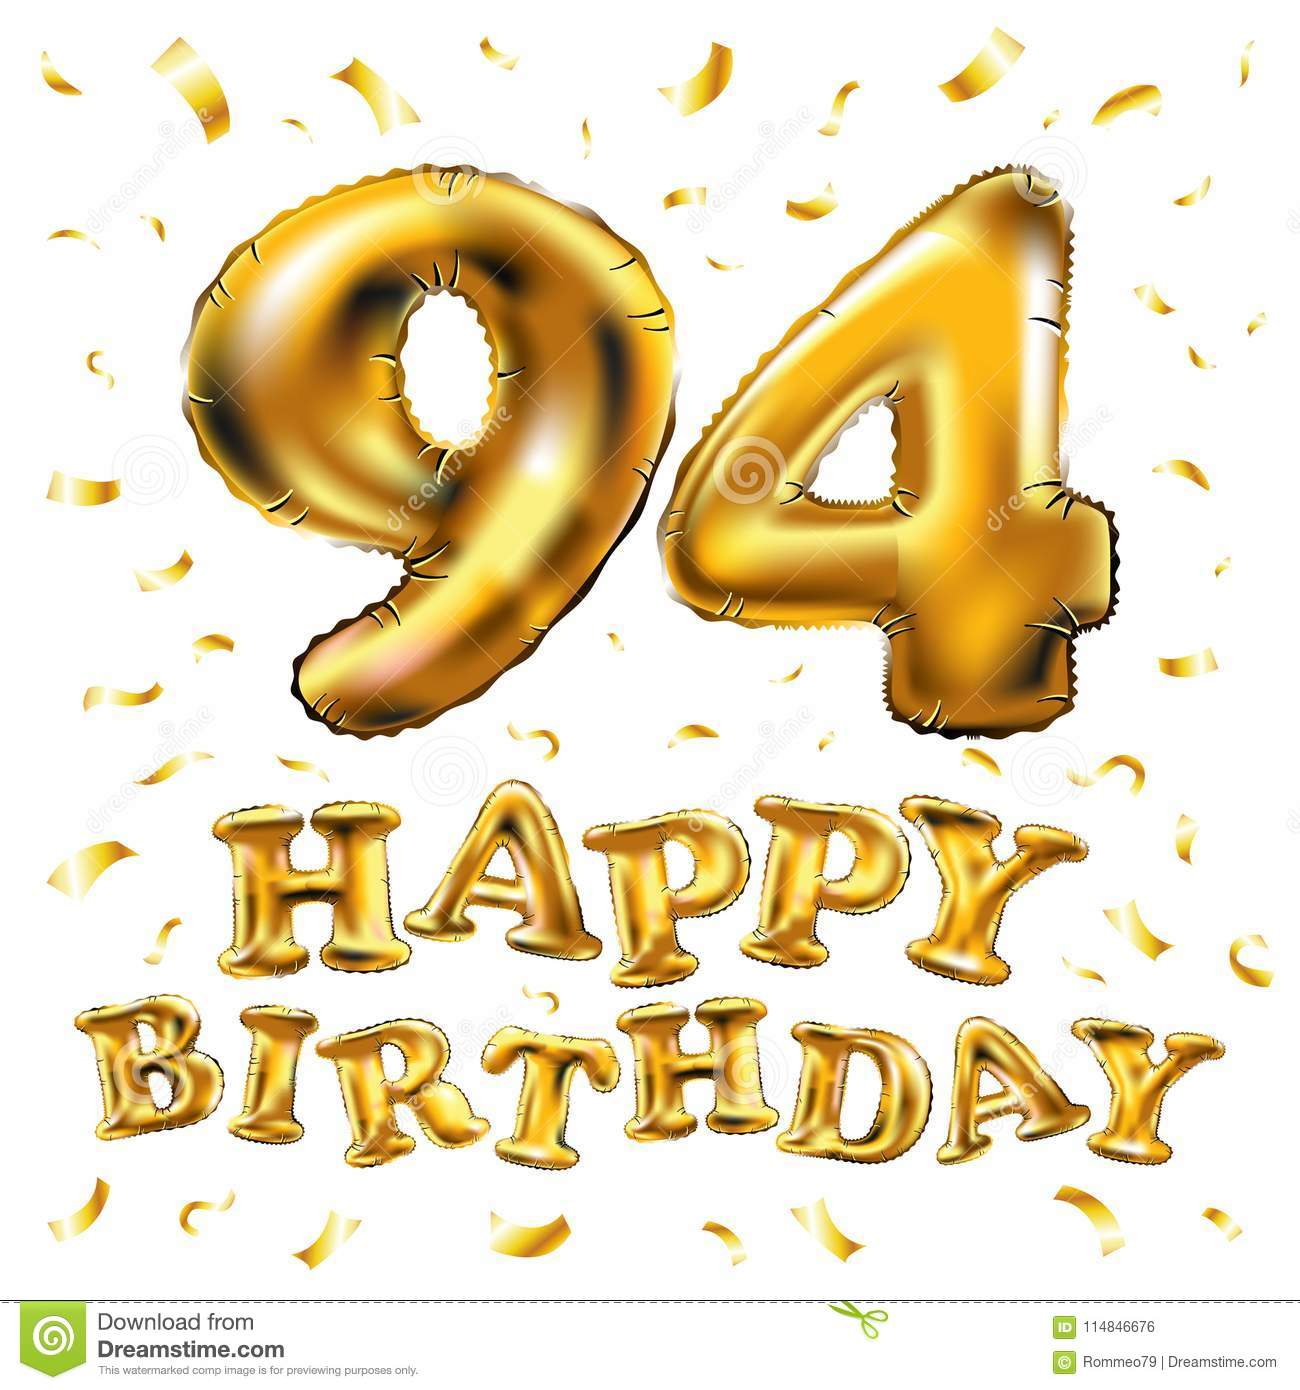 Vector Happy Birthday 94th Celebration Gold Balloons And Golden Confetti Glitters 3d Illustration Design For